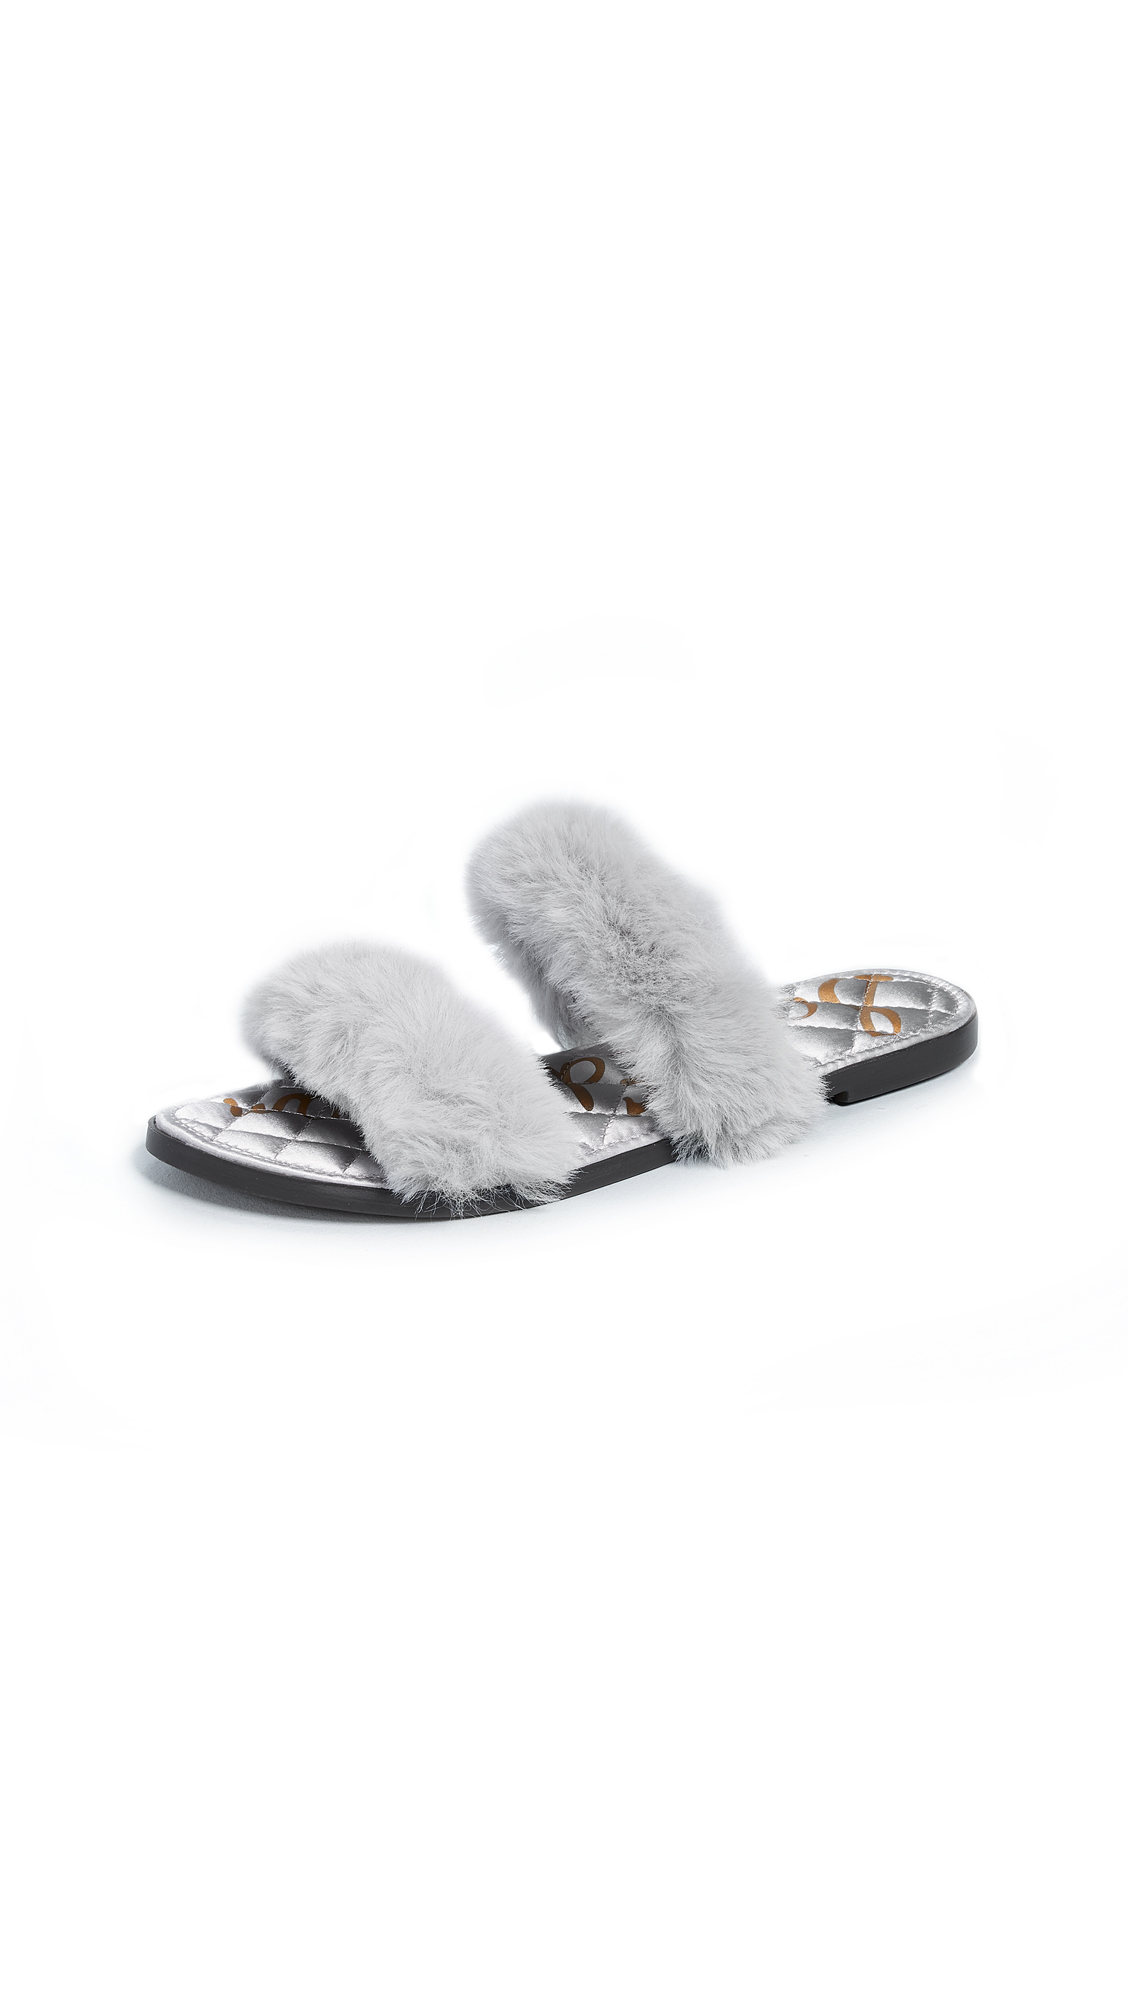 Sam Edelman Griselda Slides - Light Grey